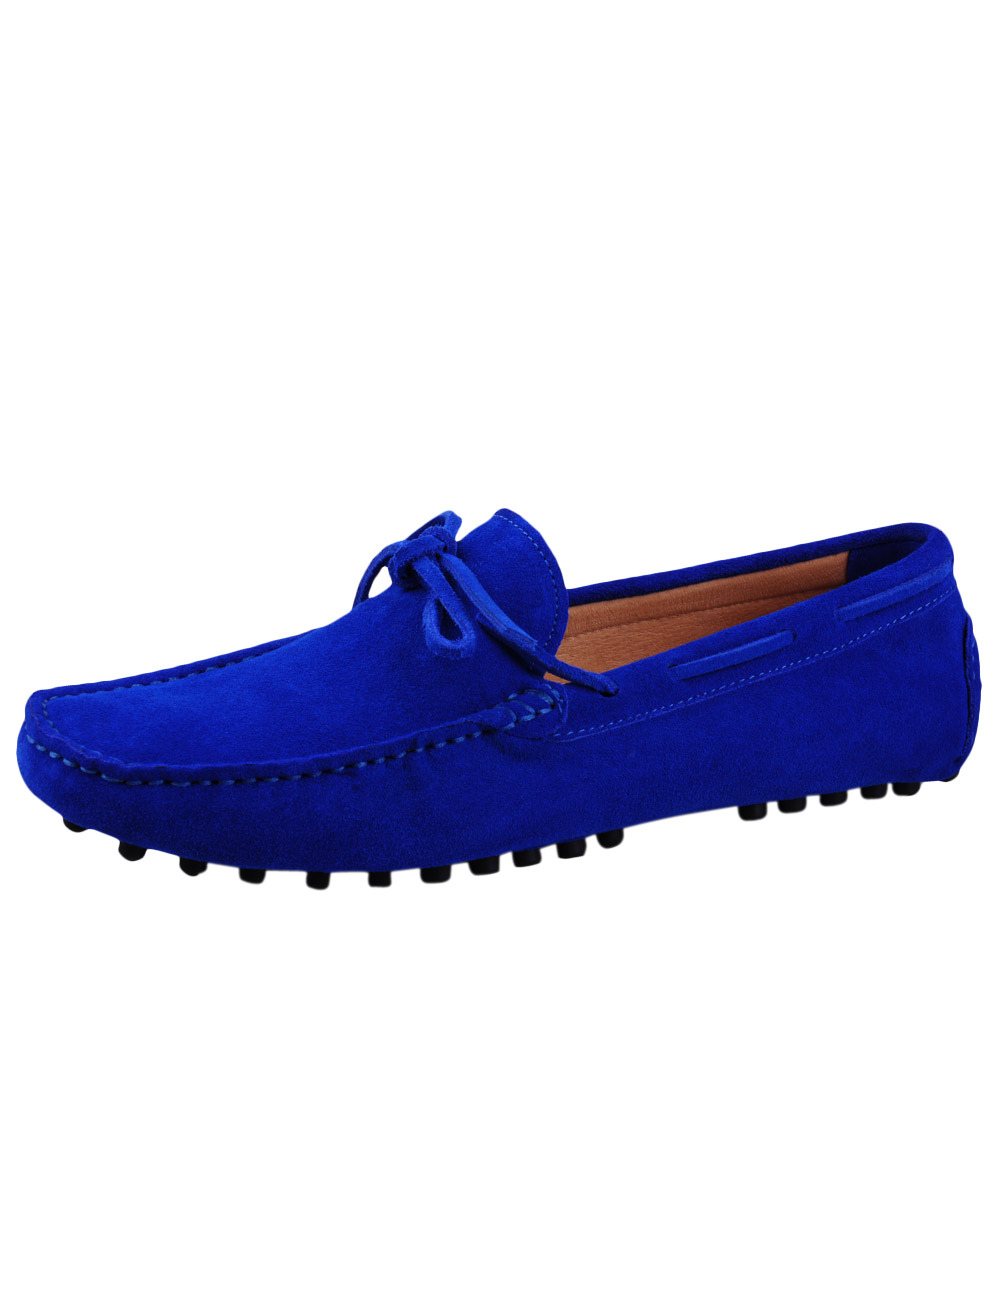 Royal Blue Loafers 2018 Men Shoes Cowhide Round Toe Bow Slip On Shoes